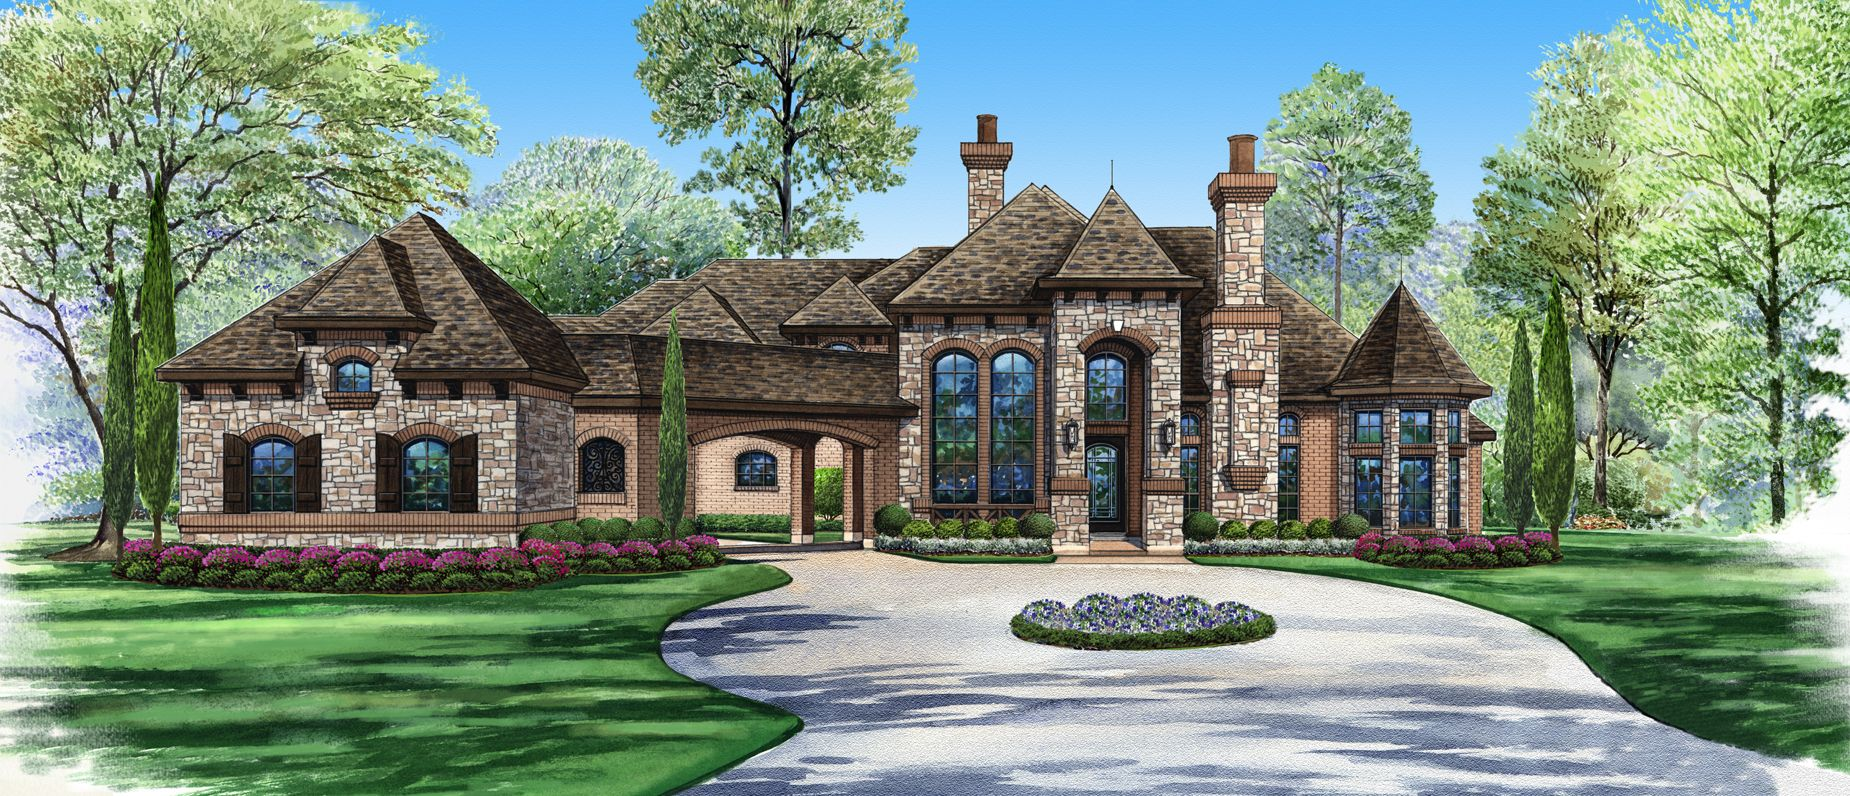 Eisenhower house plan from 6500 for Estate home designs